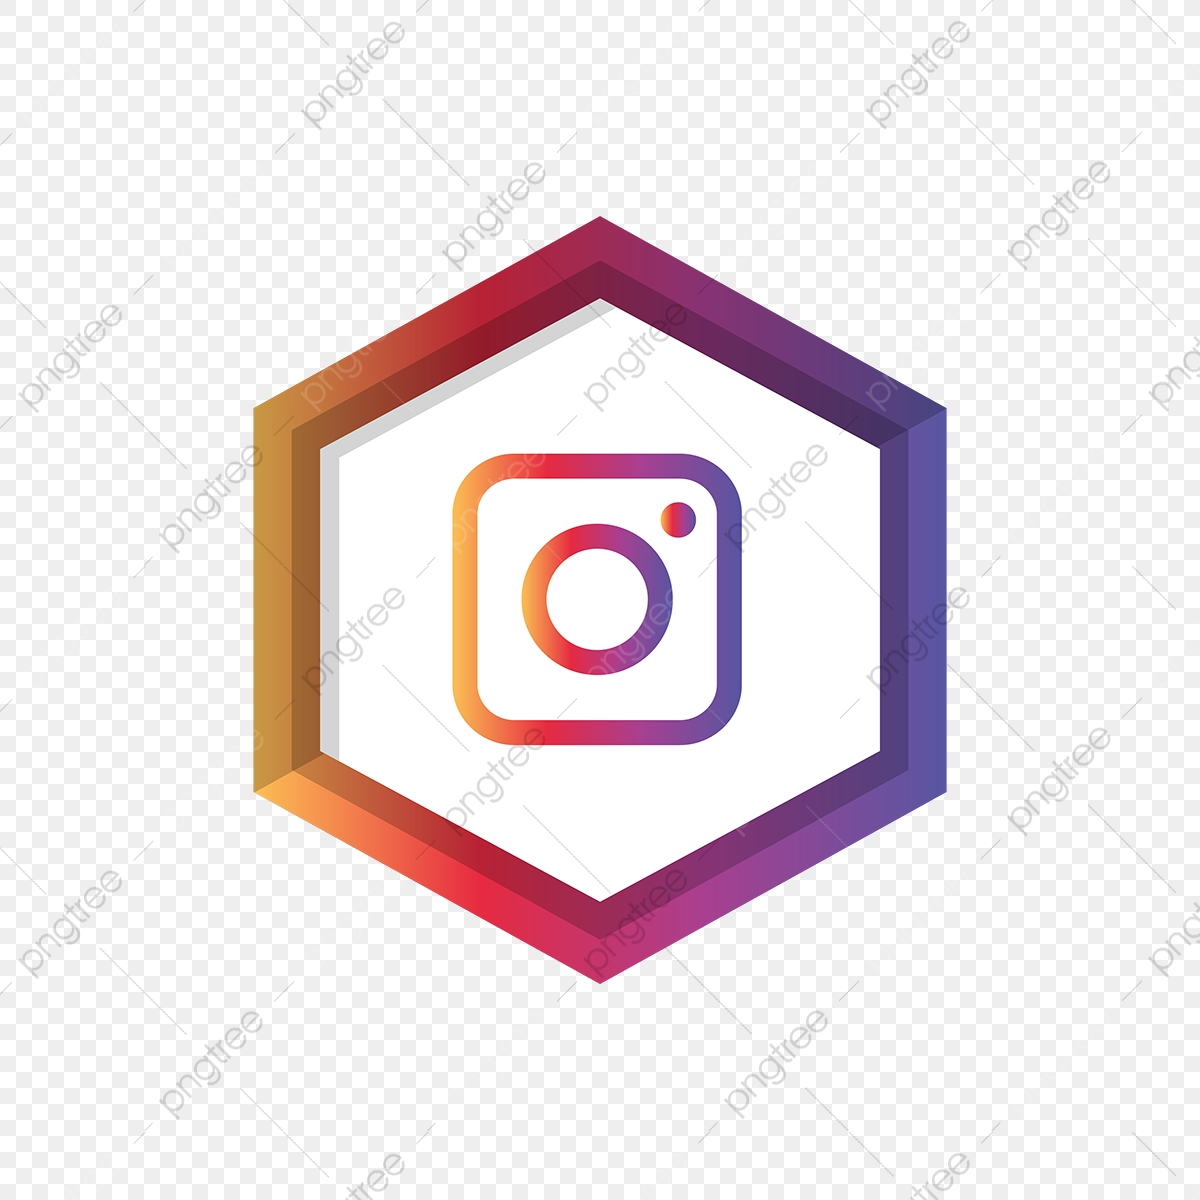 Instagram Logo Icon Instagram Icons Logo Icons Diamond Shape Png And Vector With Transparent Background For Free Download